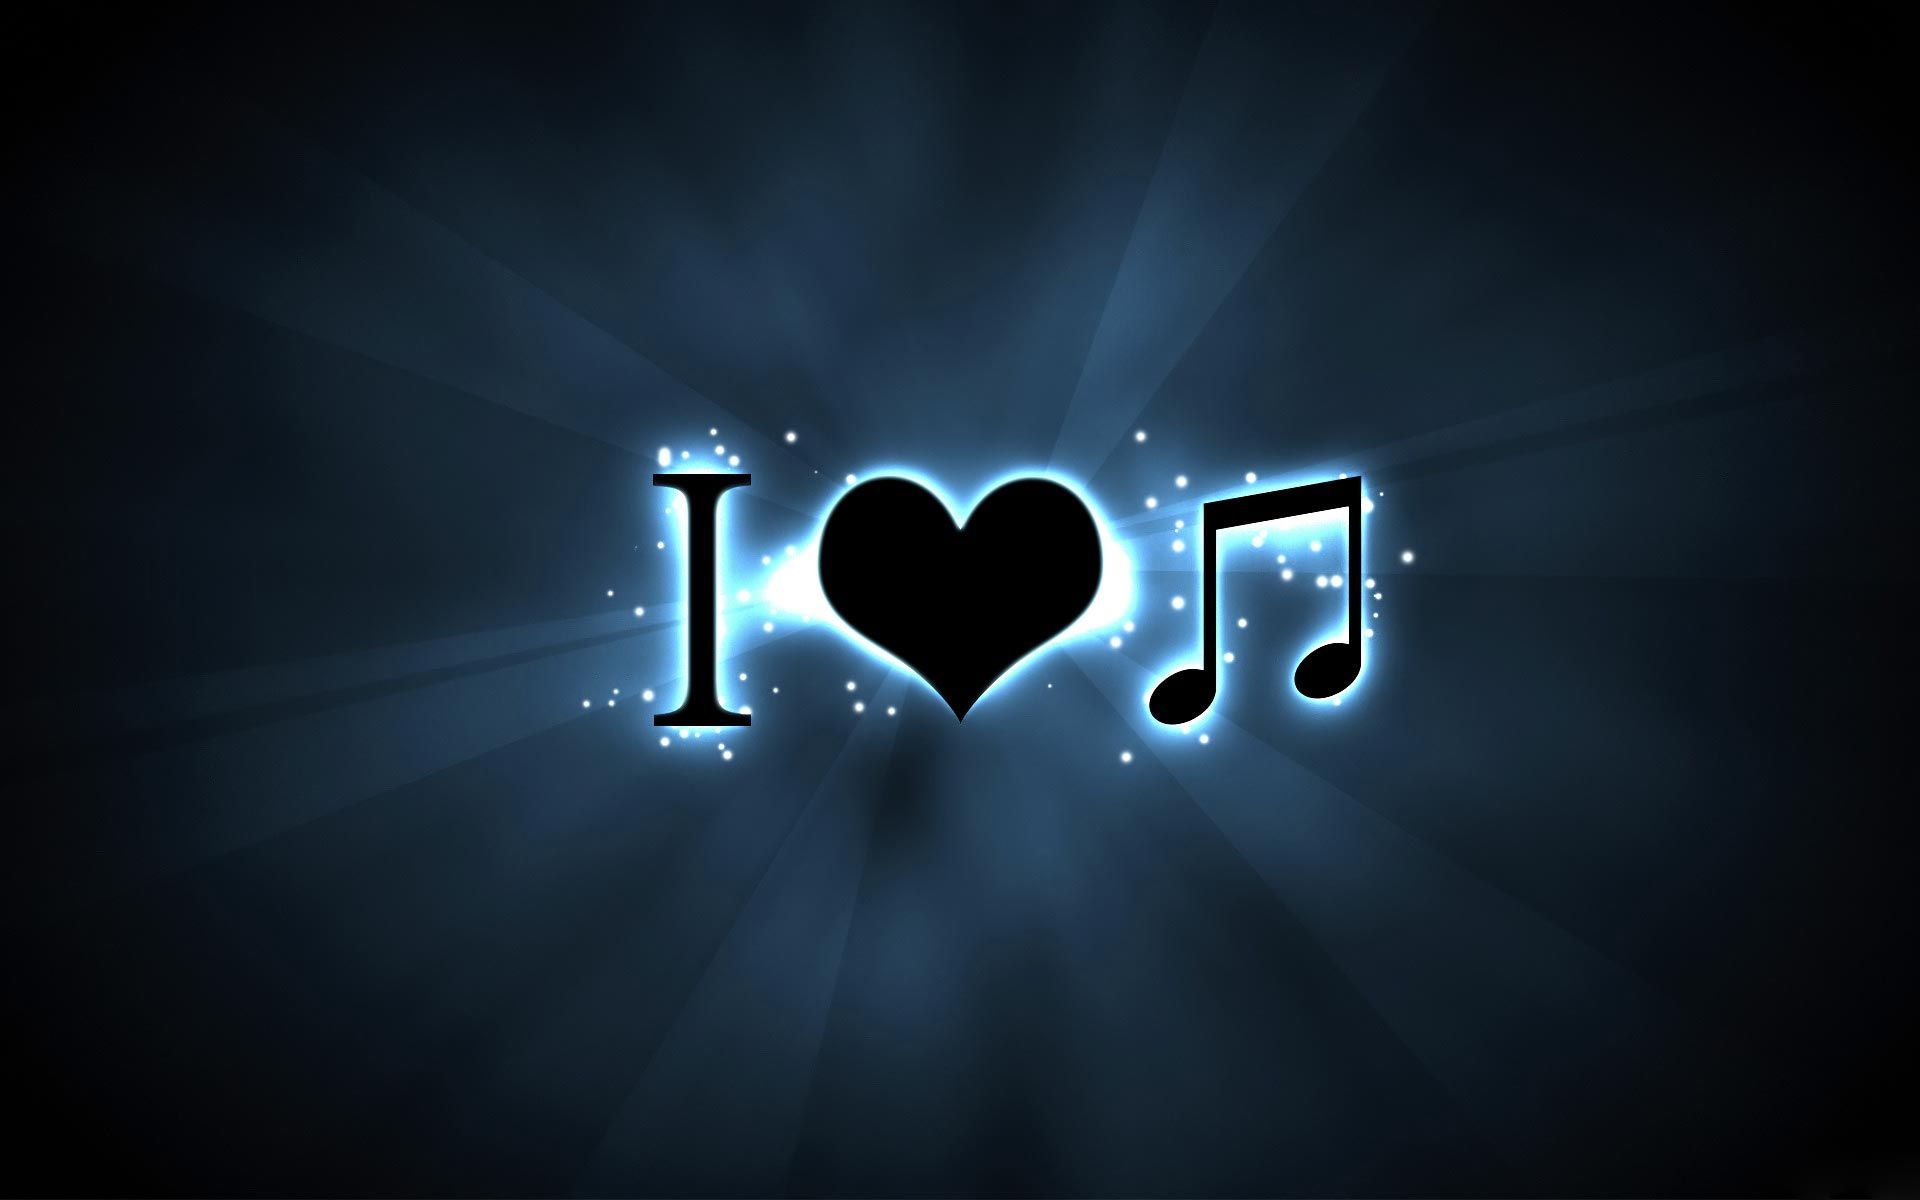 Love Music Wallpaper Music Backgrounds 3d Wallpaper For Mobile Hd Wallpaper